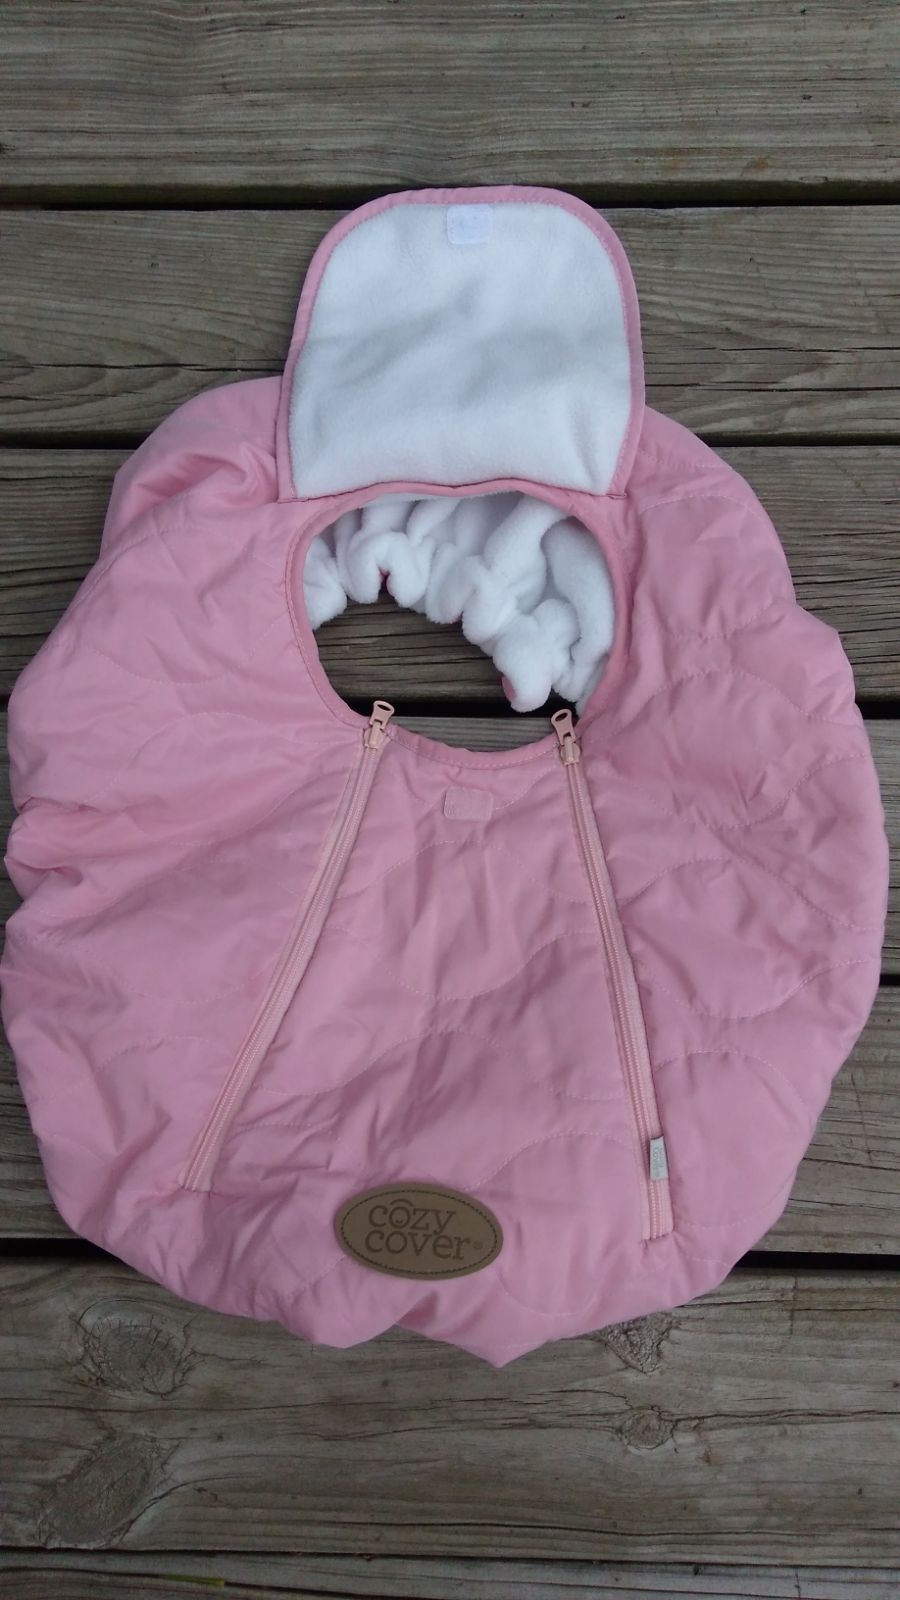 Cozy Cover Carseat Rose Pink